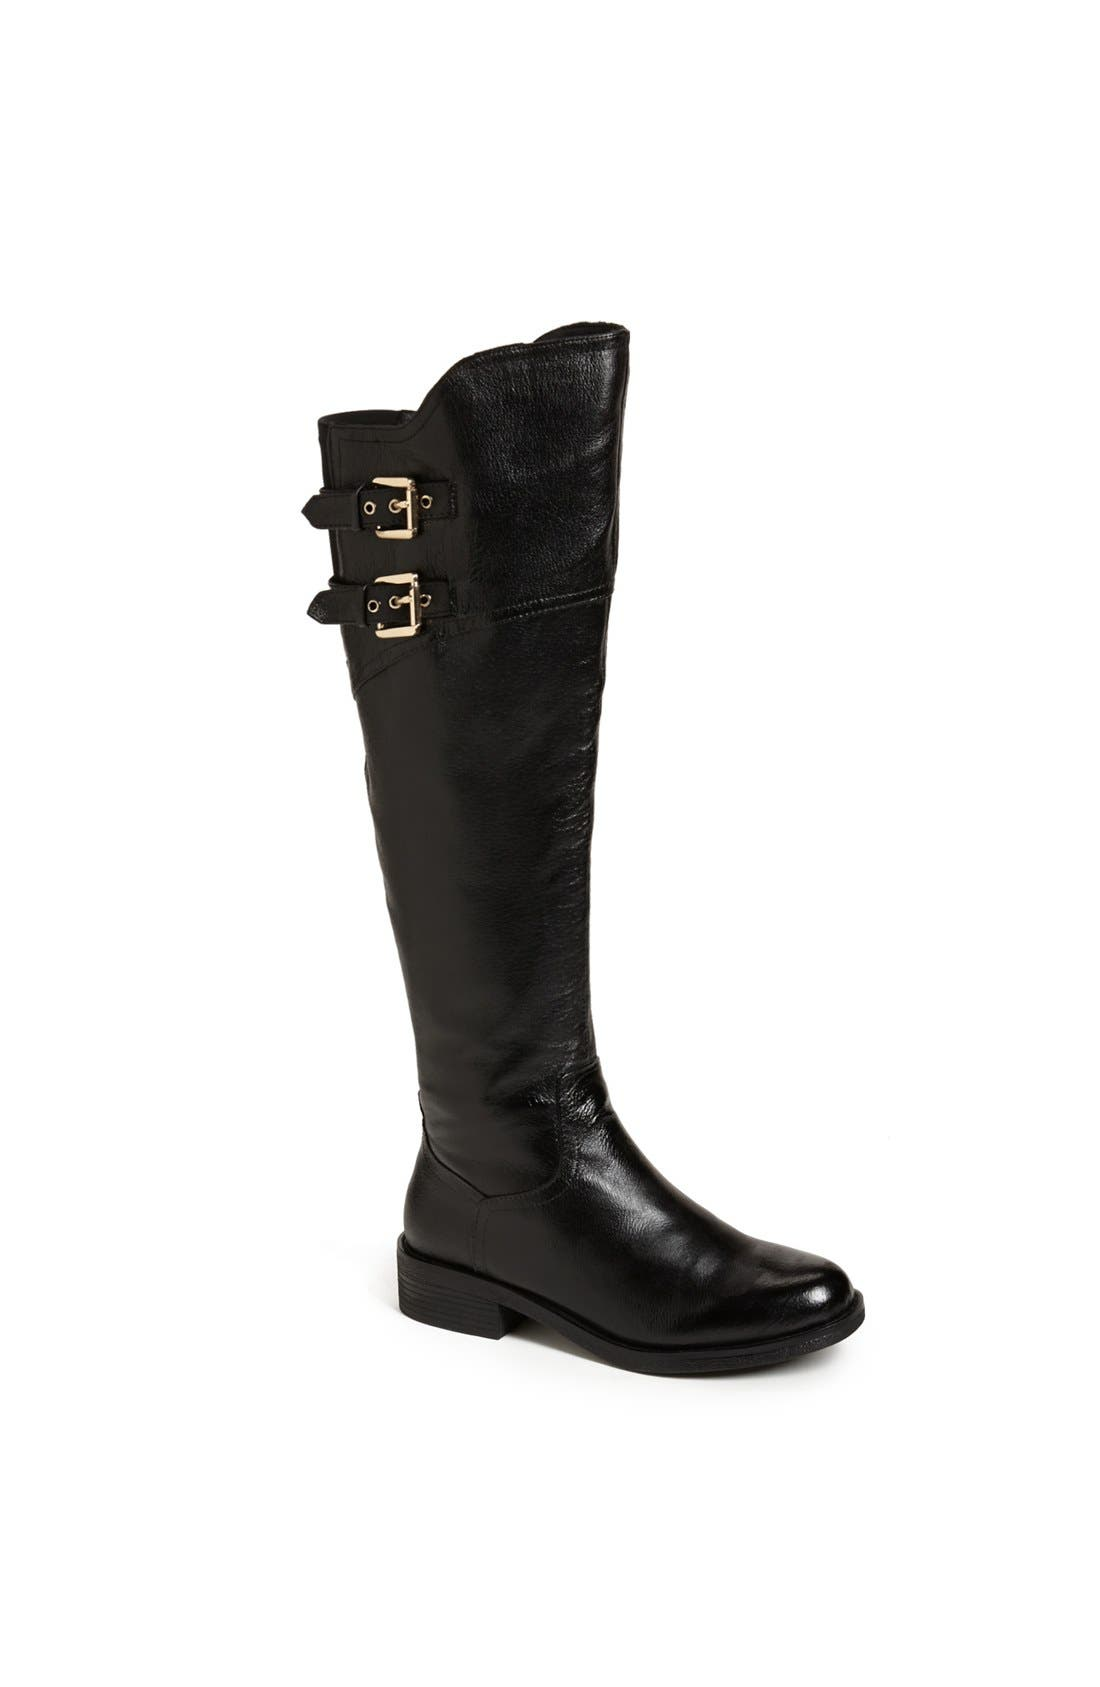 Main Image - Steve Madden 'Obvious' Over the Knee Boot